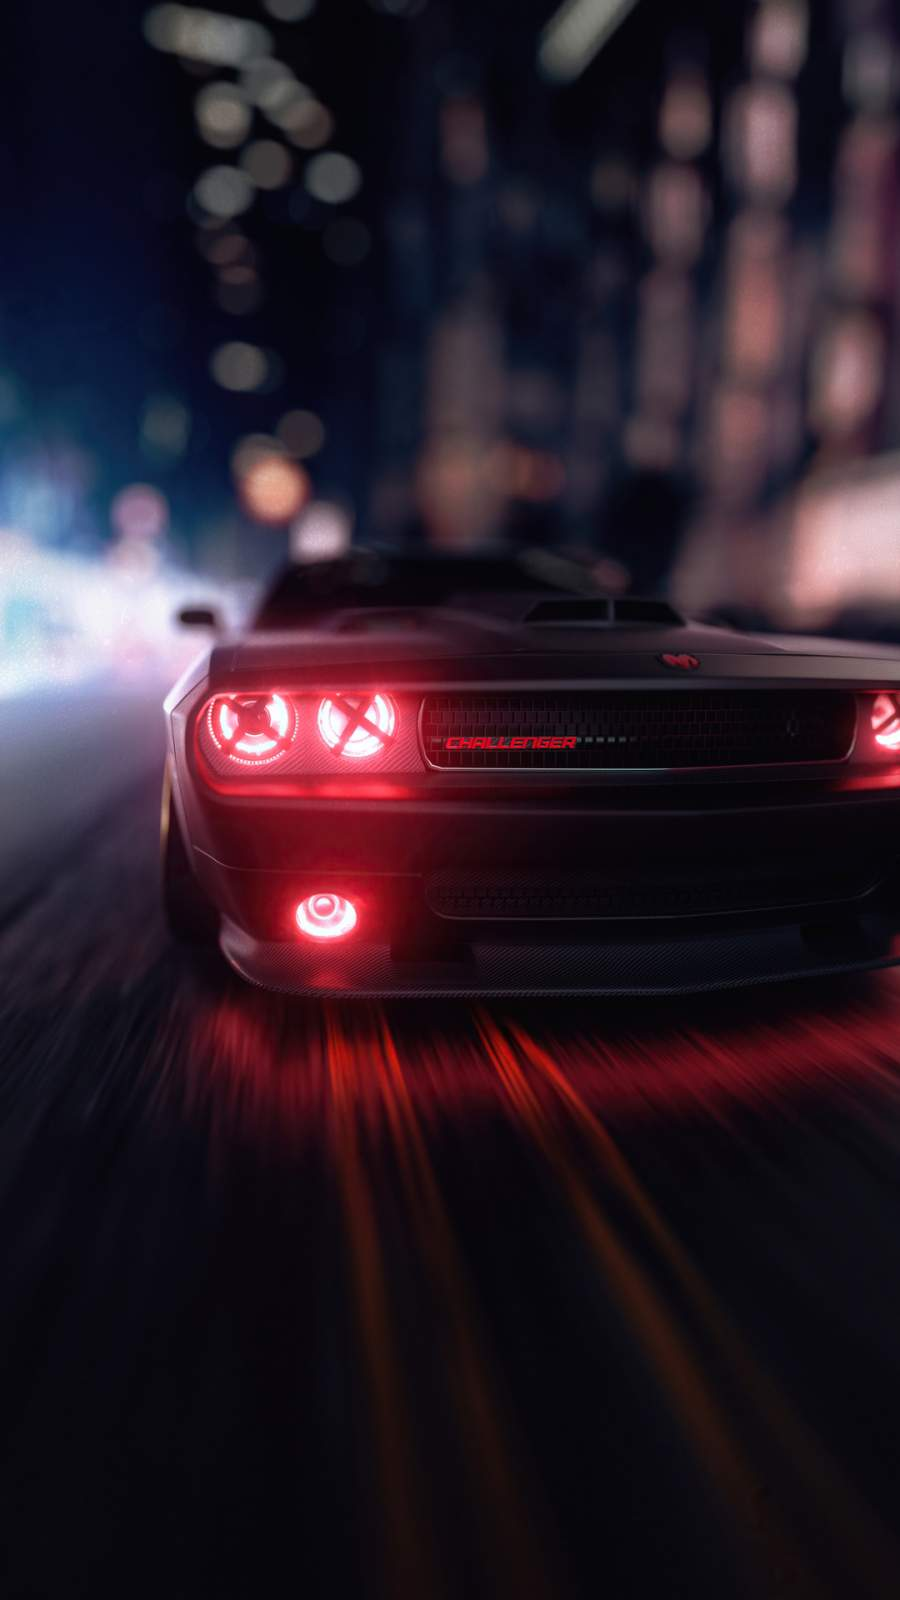 Dodge Challenger Angel Headlights iPhone Wallpaper